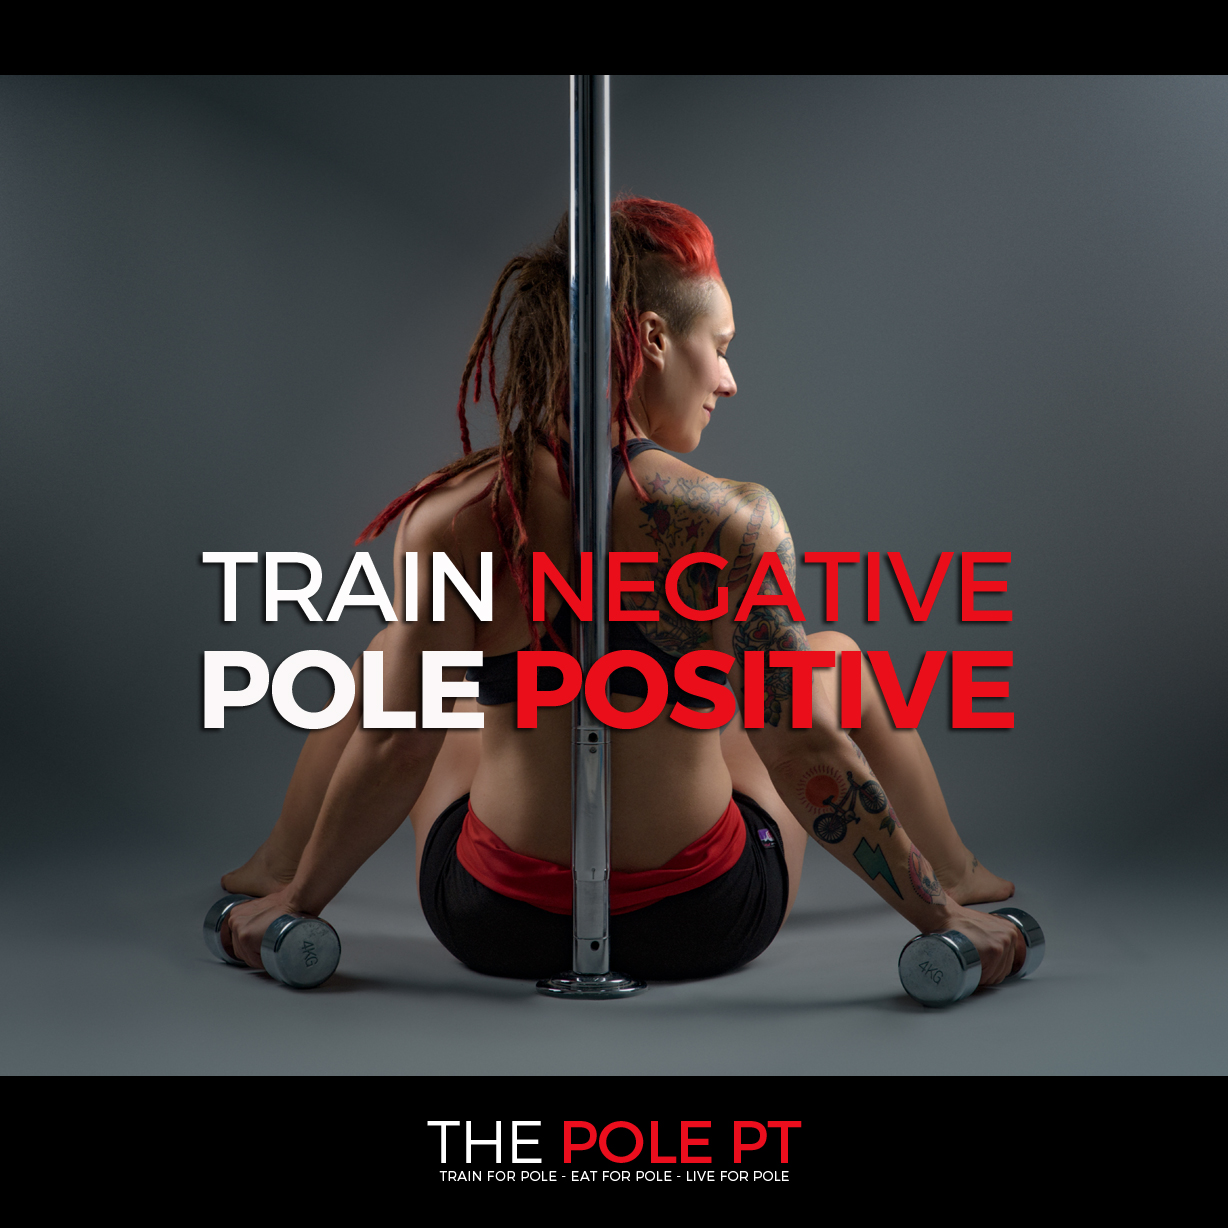 Personal trainer pole fitness